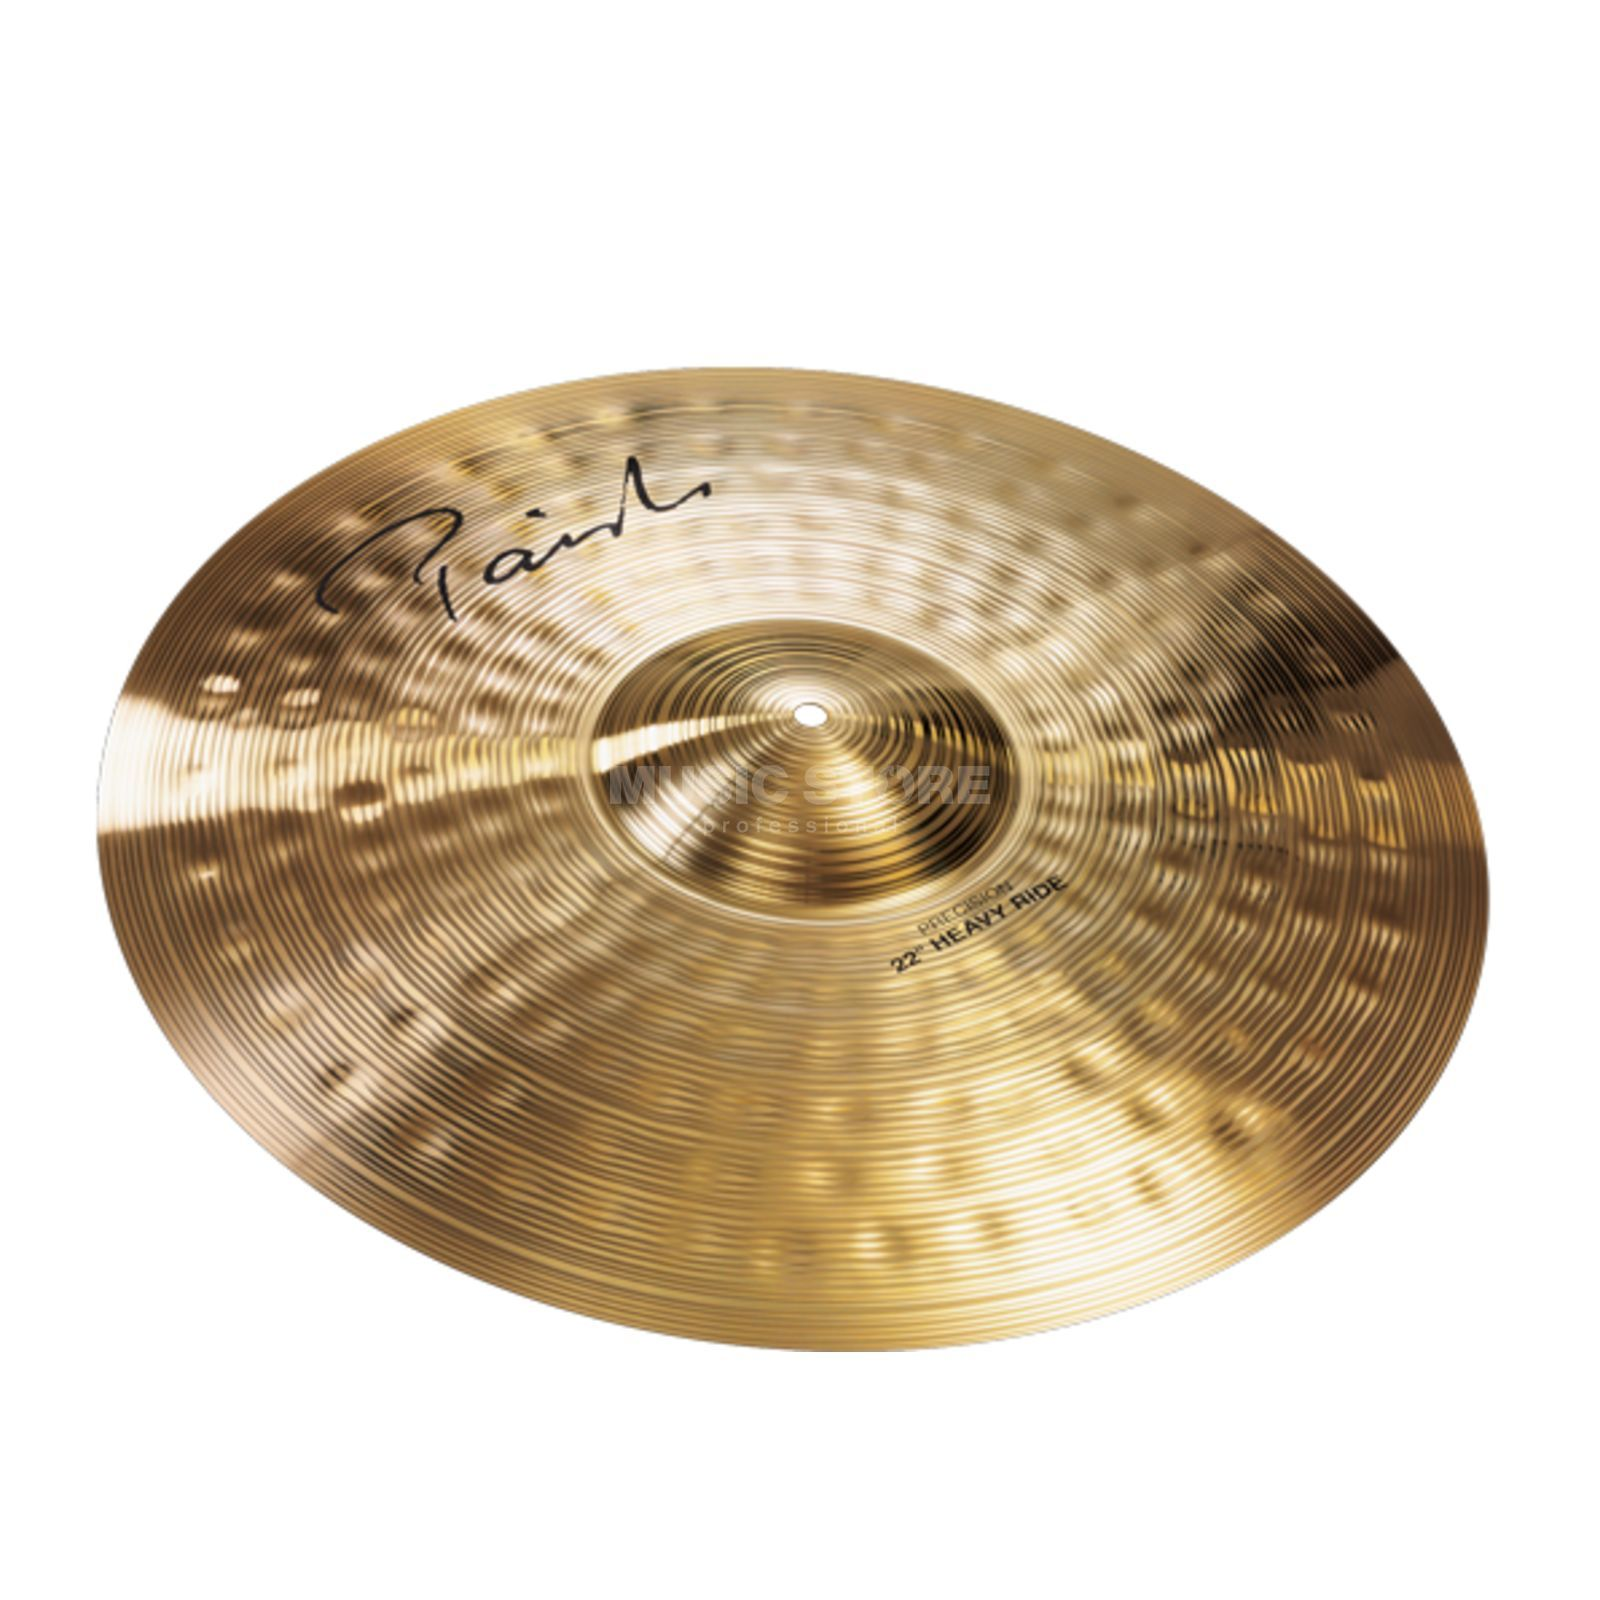 "Paiste Signature Precision Ride 20"", Heavy Produktbild"